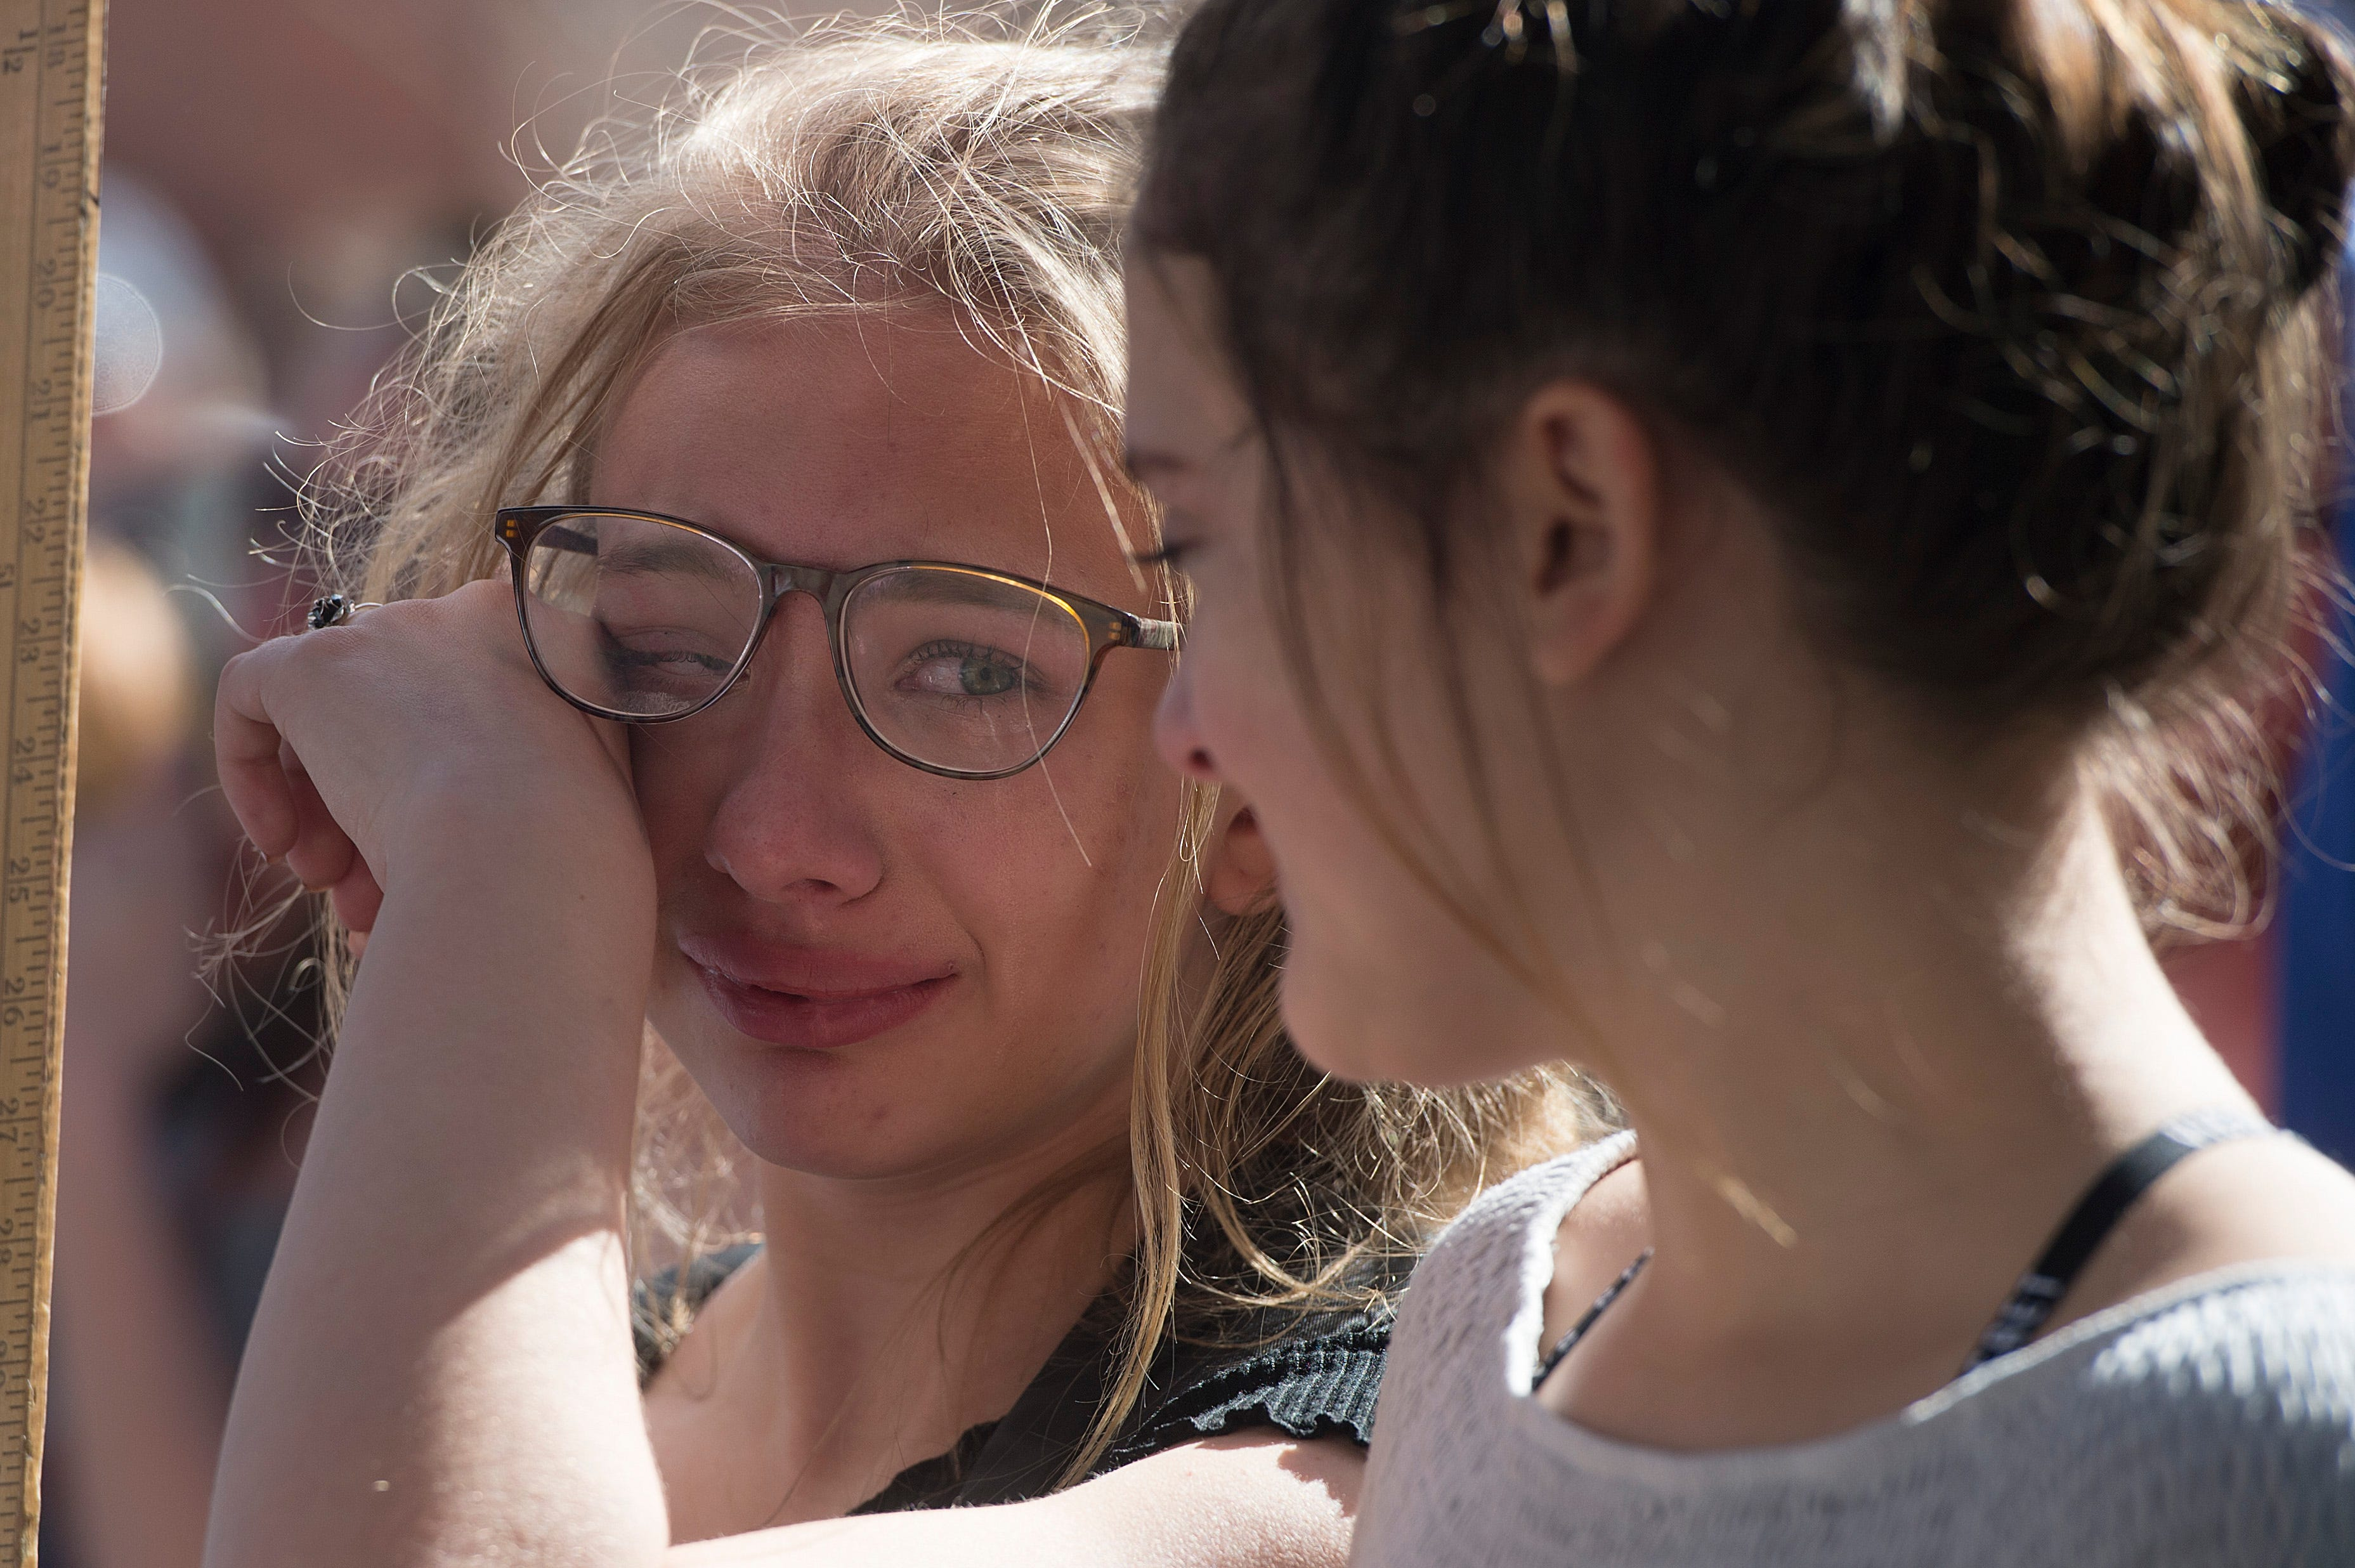 Bella Swanson, 13, wipes a tear away as she looks to her friend Bonnie Torres during a March for Our Lives event on on March 24, 2018. The gathering was a part of the national movement following the Parkland, Fla shooting.